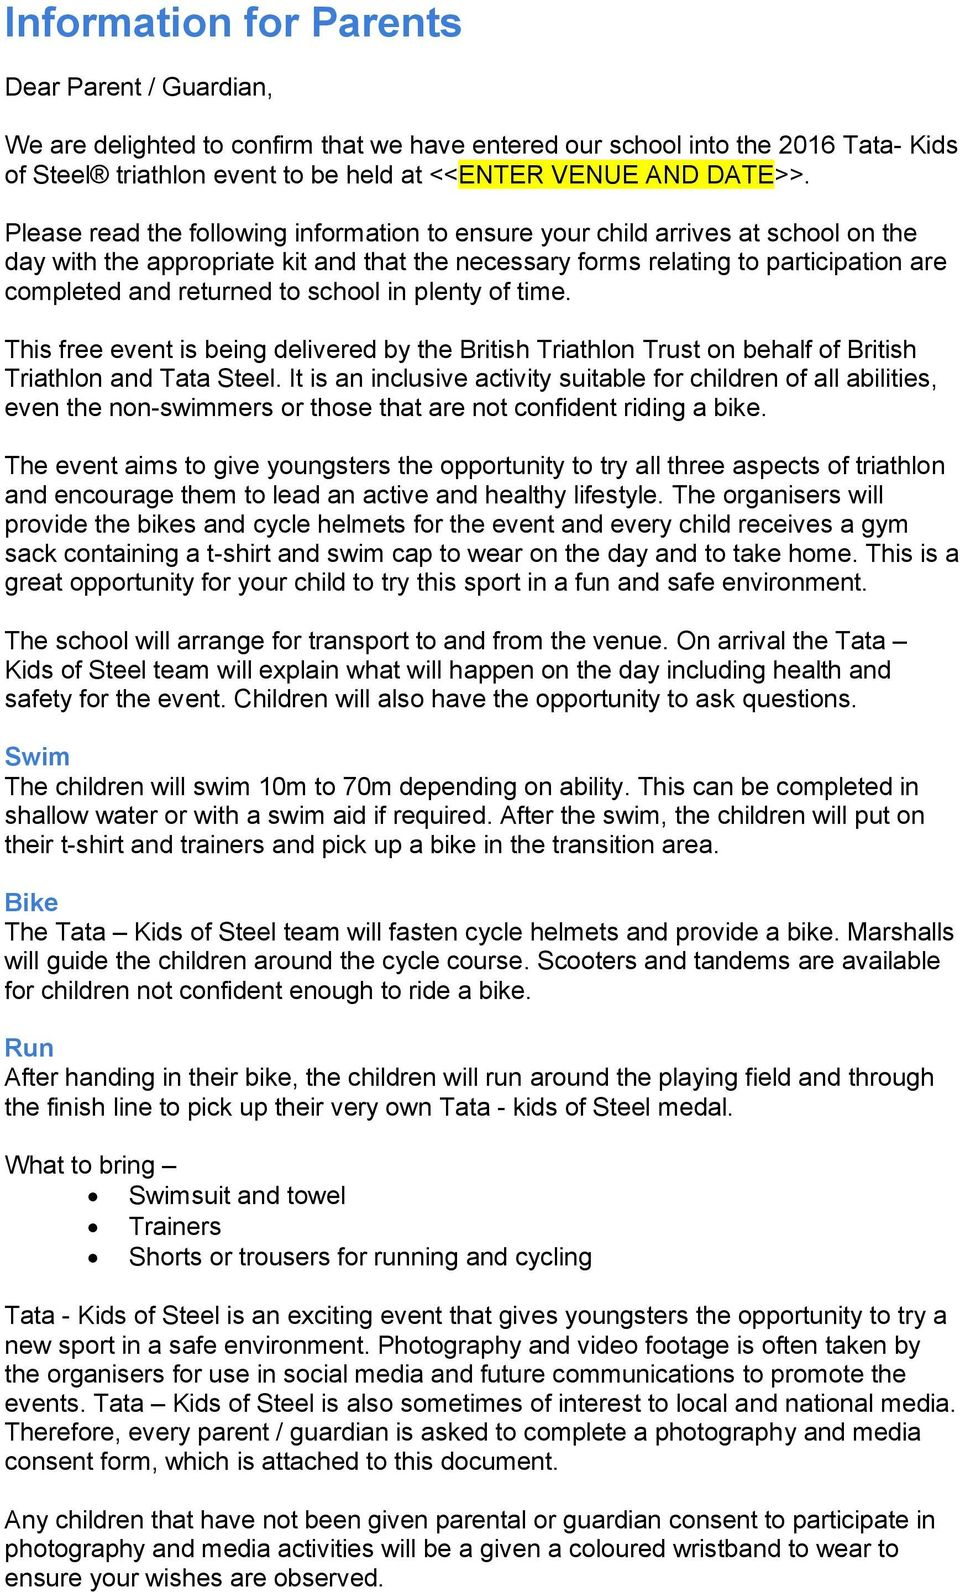 school in plenty of time. This free event is being delivered by the British Triathlon Trust on behalf of British Triathlon and Tata Steel.